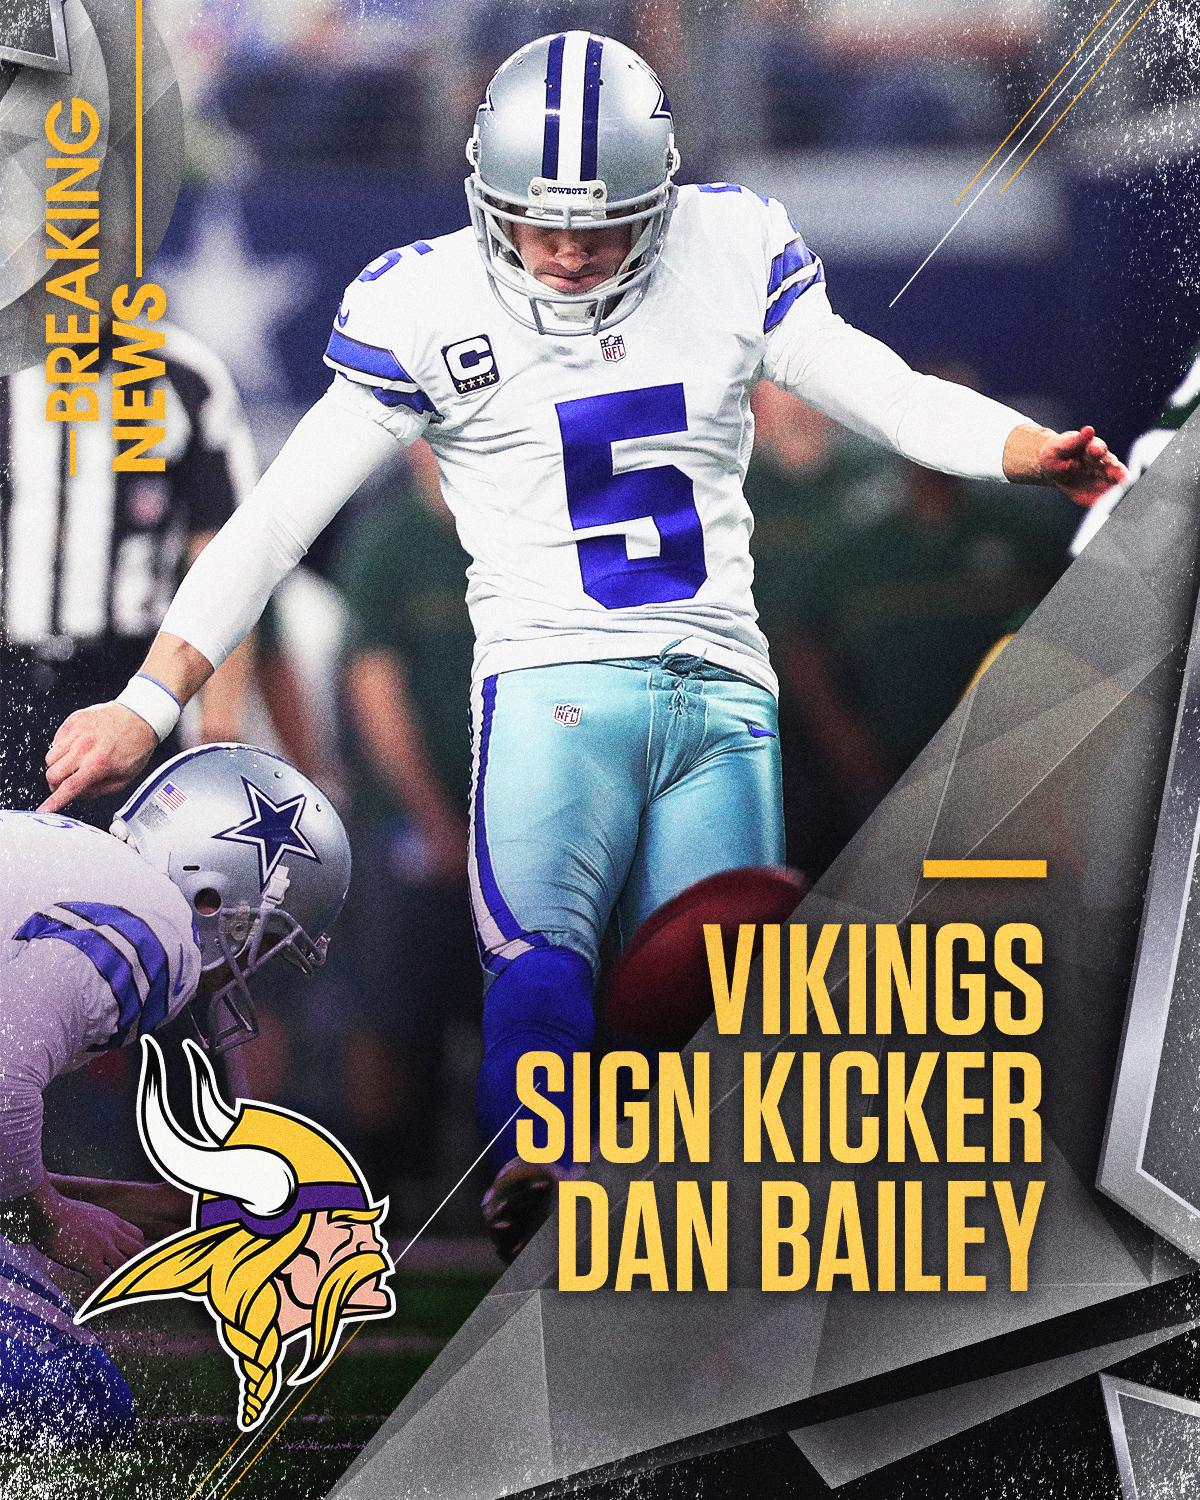 The @Vikings sign kicker Dan Bailey, who has the 2nd highest FG% in NFL history.  Read more: https://t.co/iTV0bxfPAj https://t.co/2jQCsS25l8